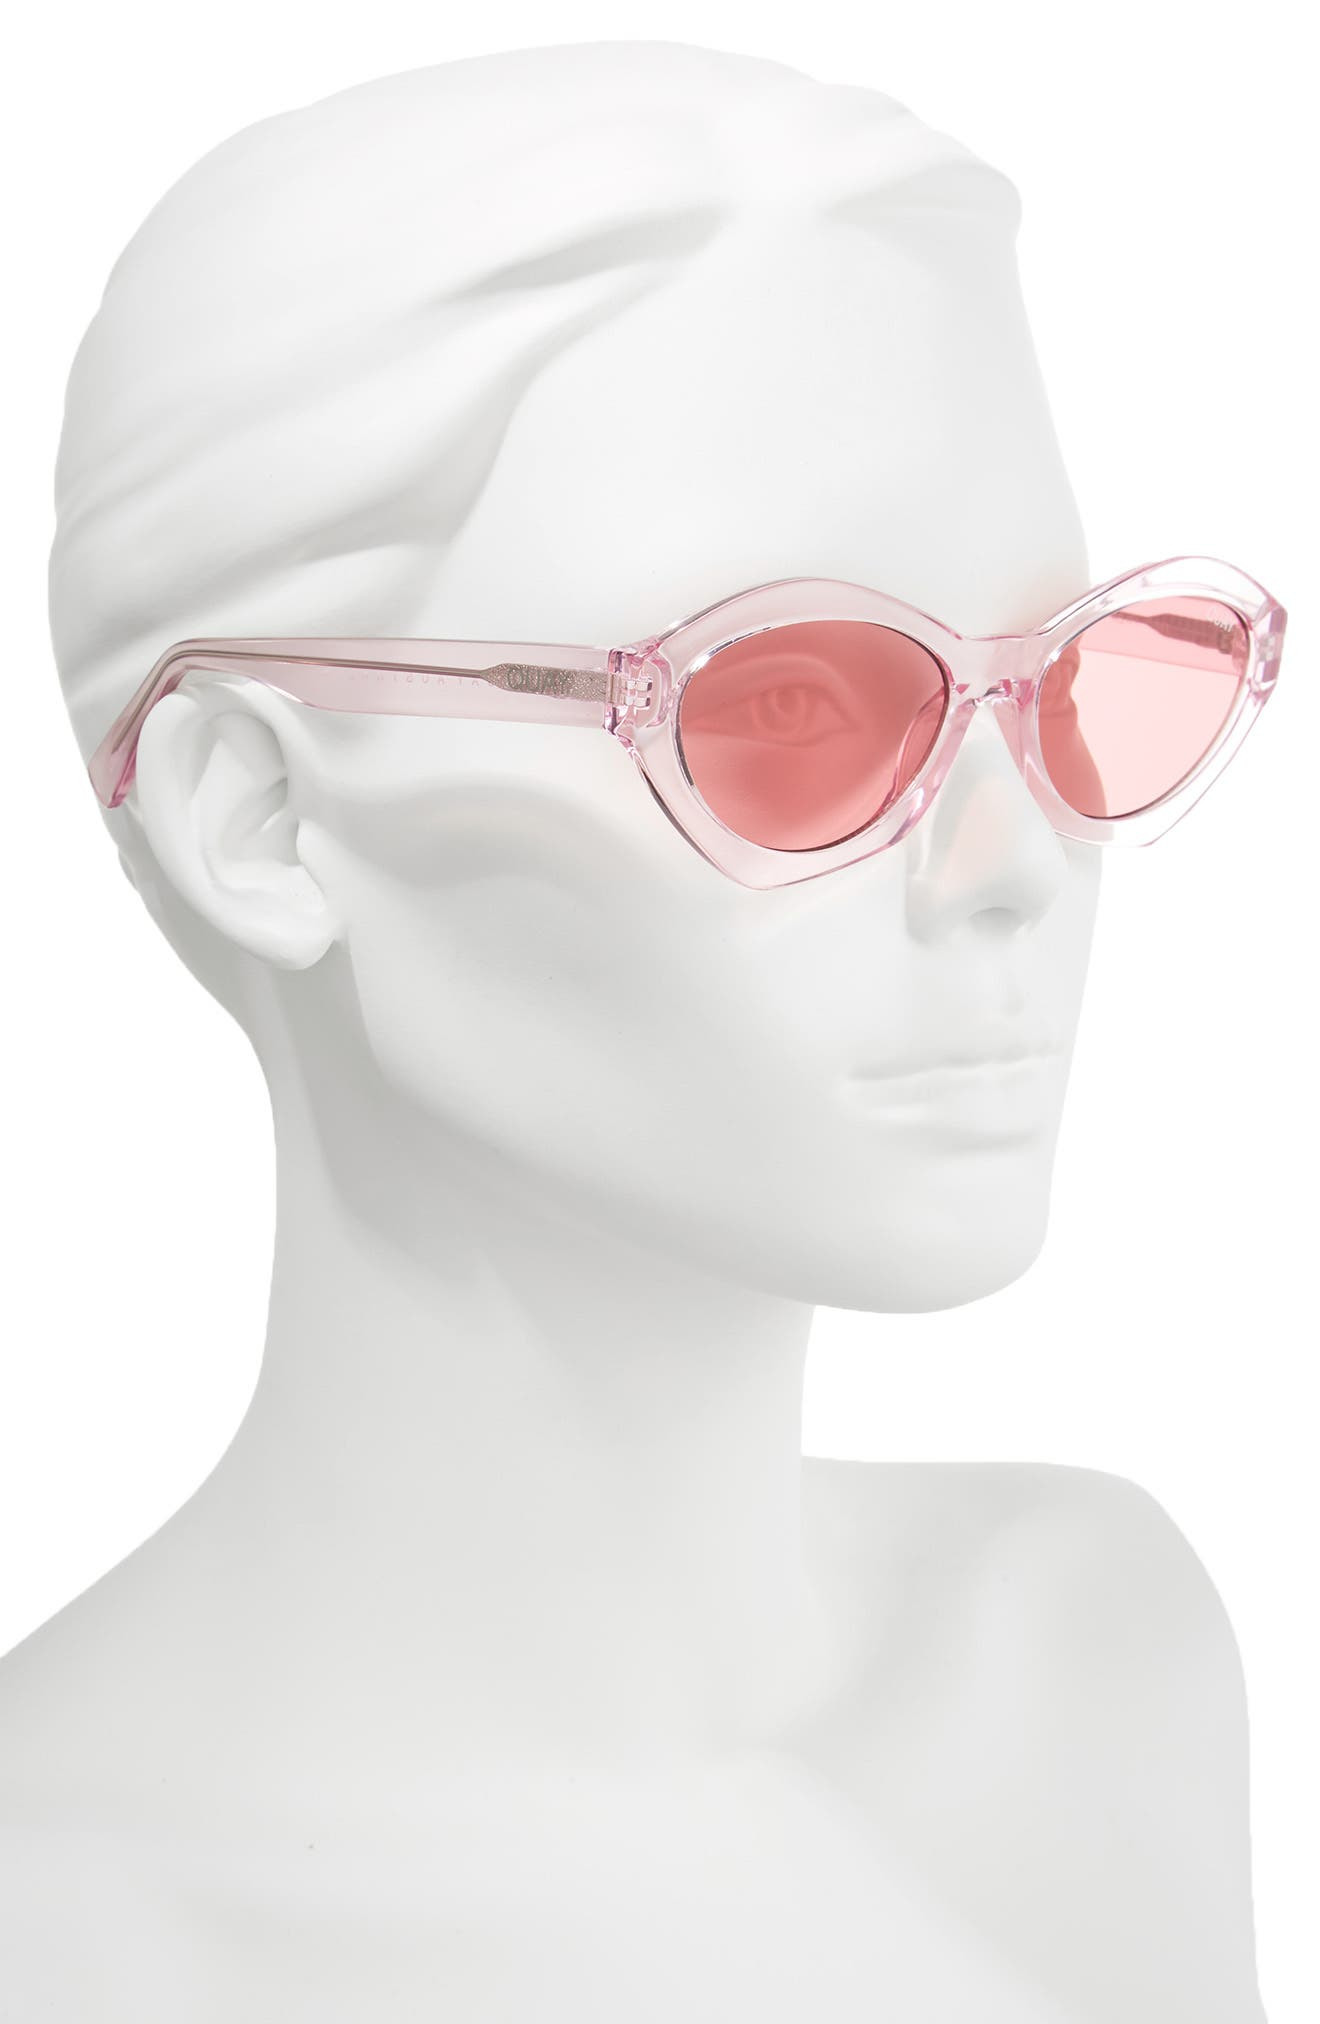 54mm As If Oval Sunglasses,                             Alternate thumbnail 2, color,                             Pink/ Pink